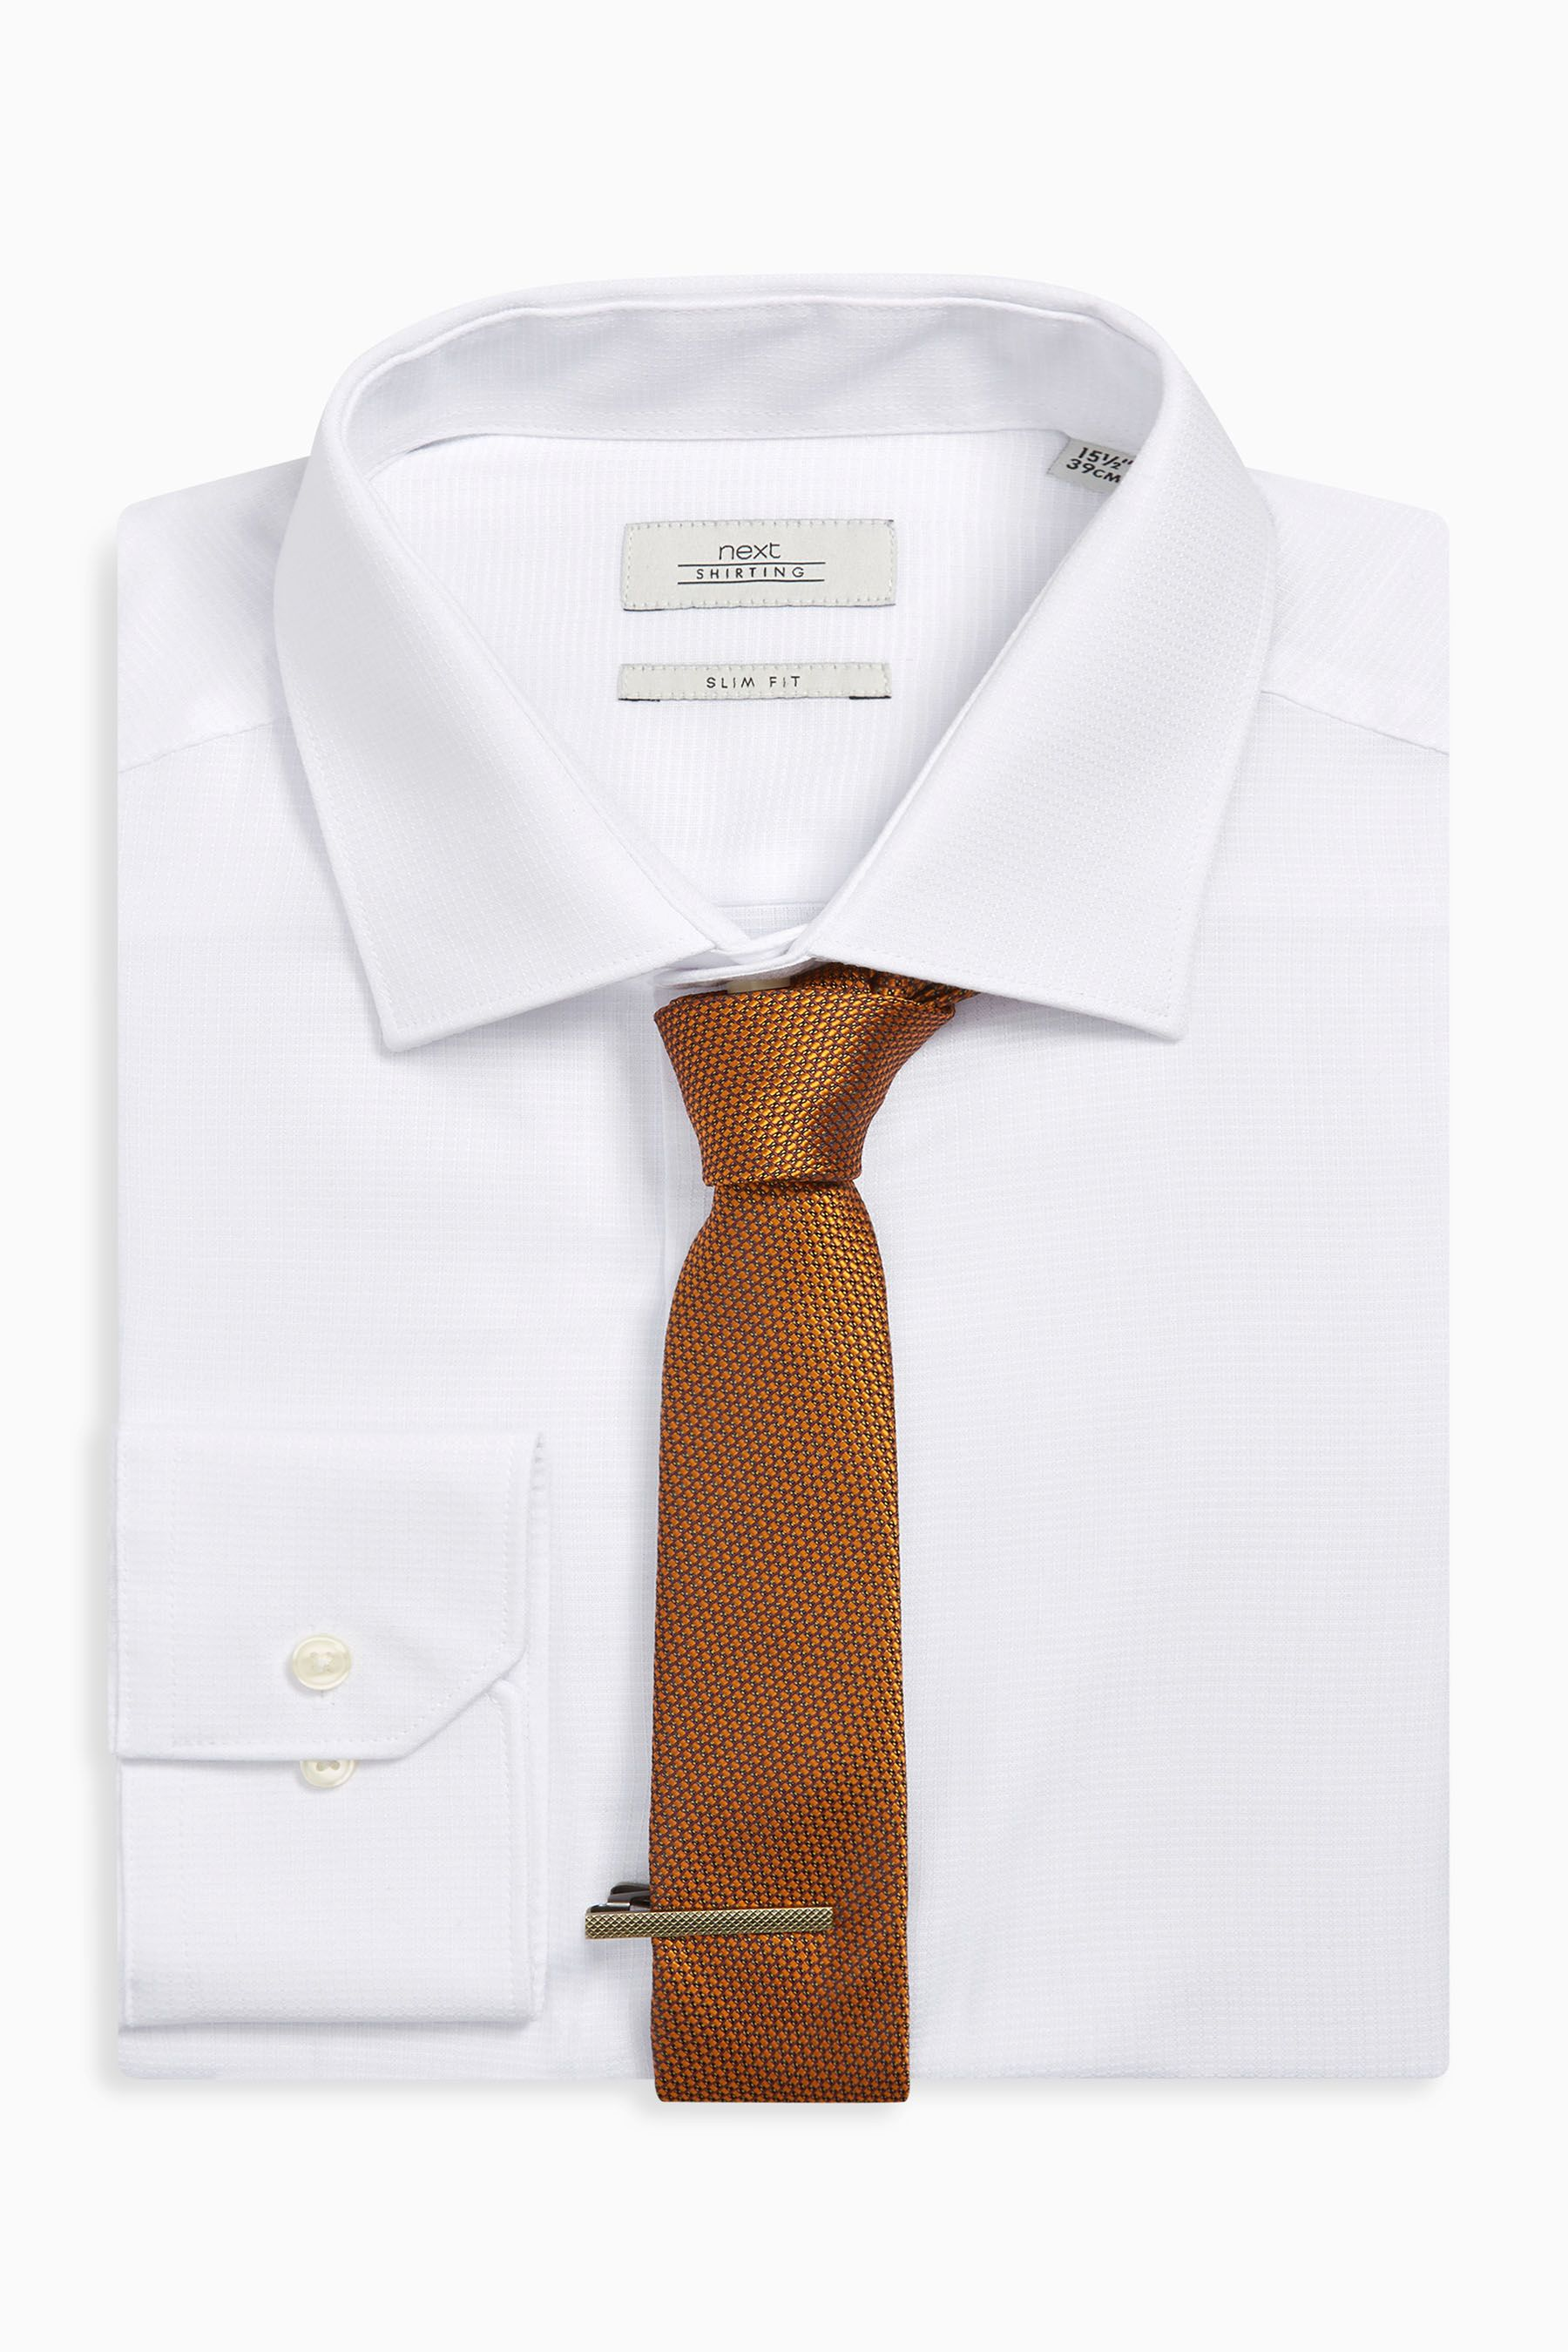 38846cda0100 Mens Next White Slim Fit Shirt With Rust Tie And Tie Clip Set - White